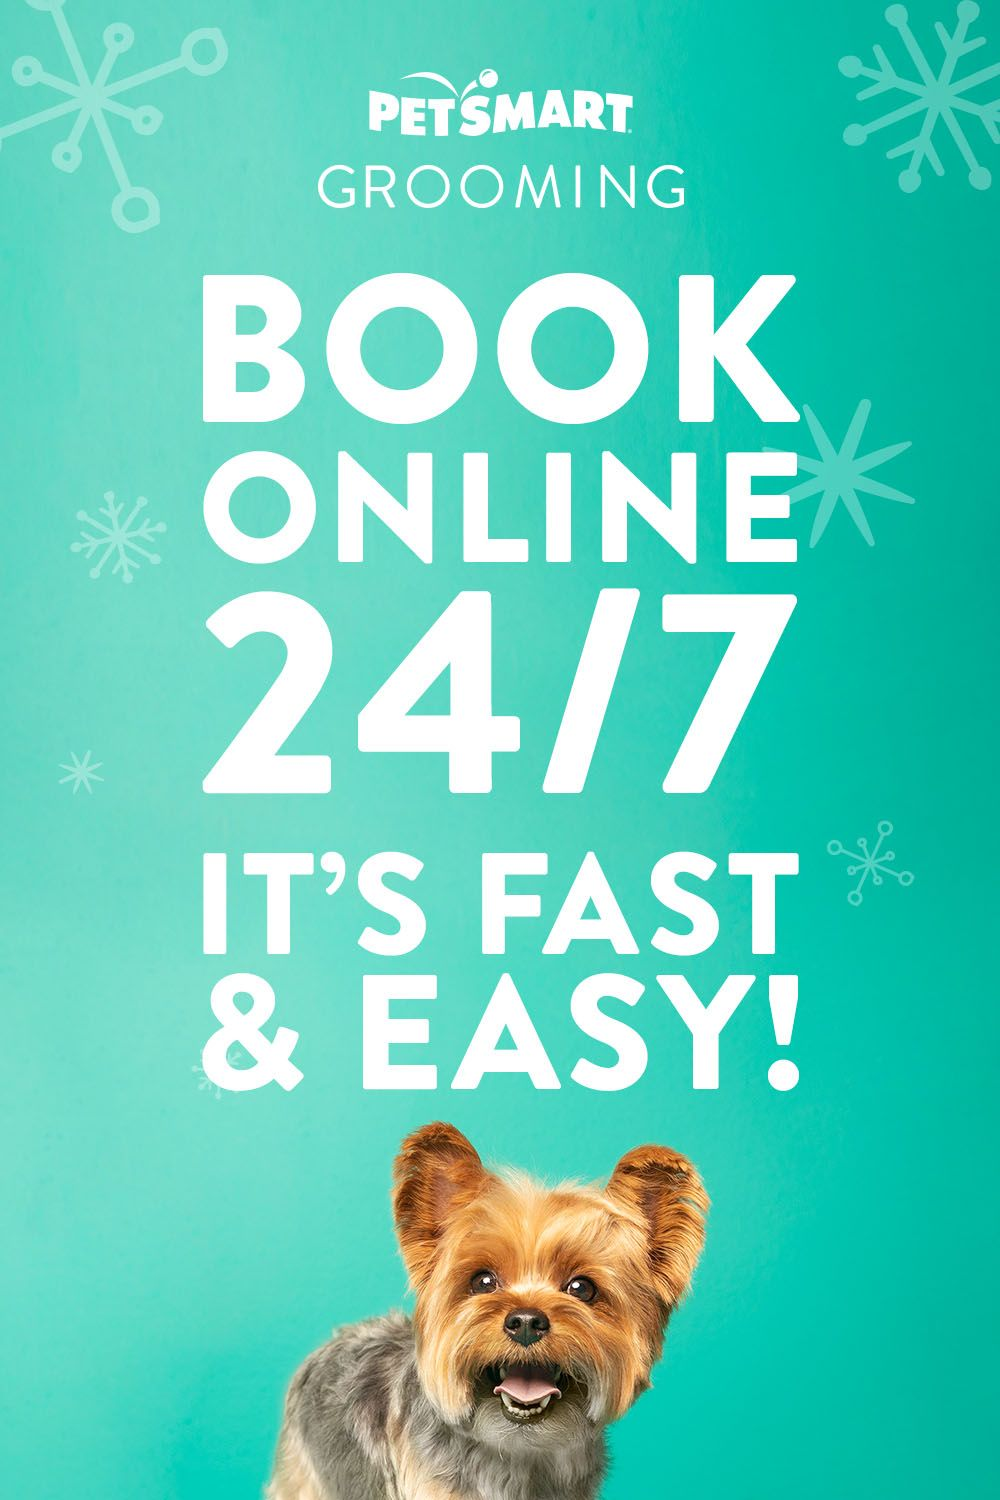 Tis The Season For A Fresh New Do It S Fast And Easy To Book A